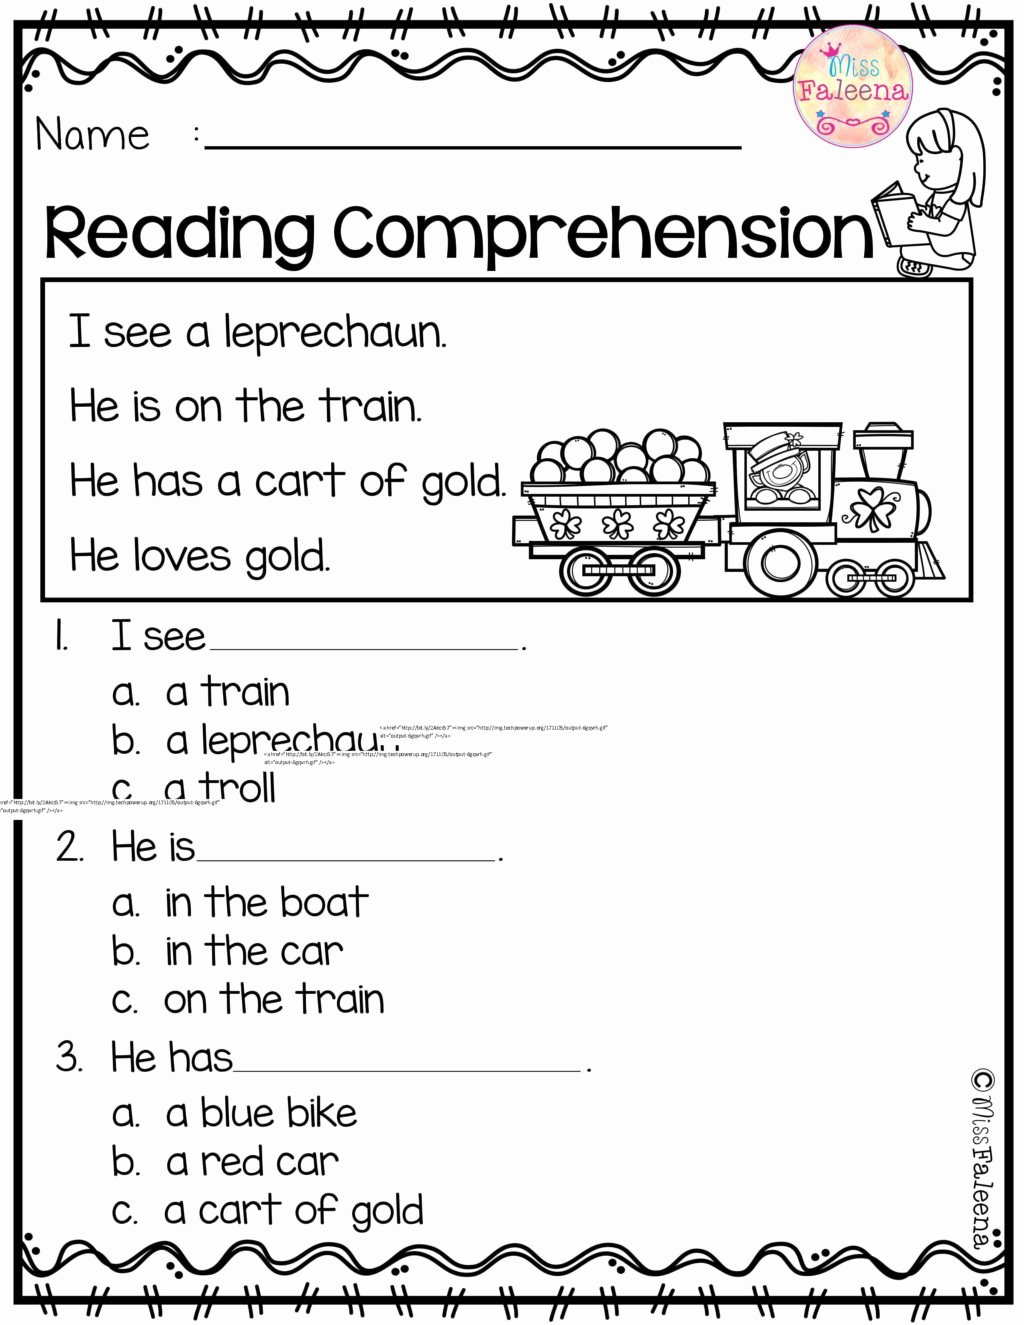 March Worksheets for Preschoolers Free Worksheet Tremendous Readin S for Kindergarten